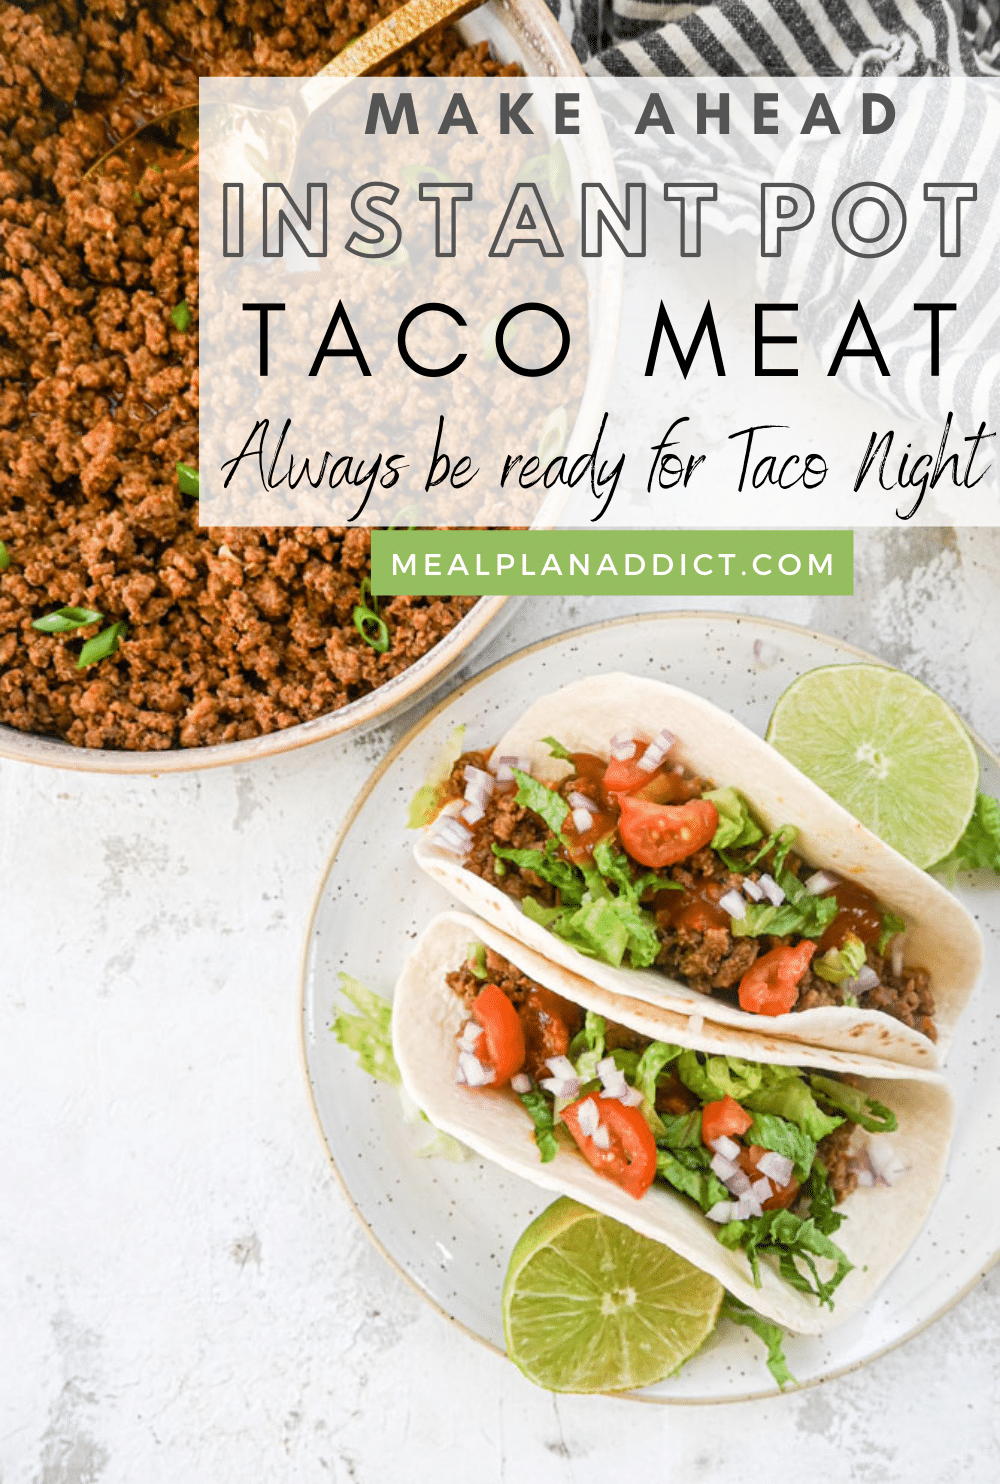 Make Ahead Instant Pot Taco Meat for Taco Tuesday